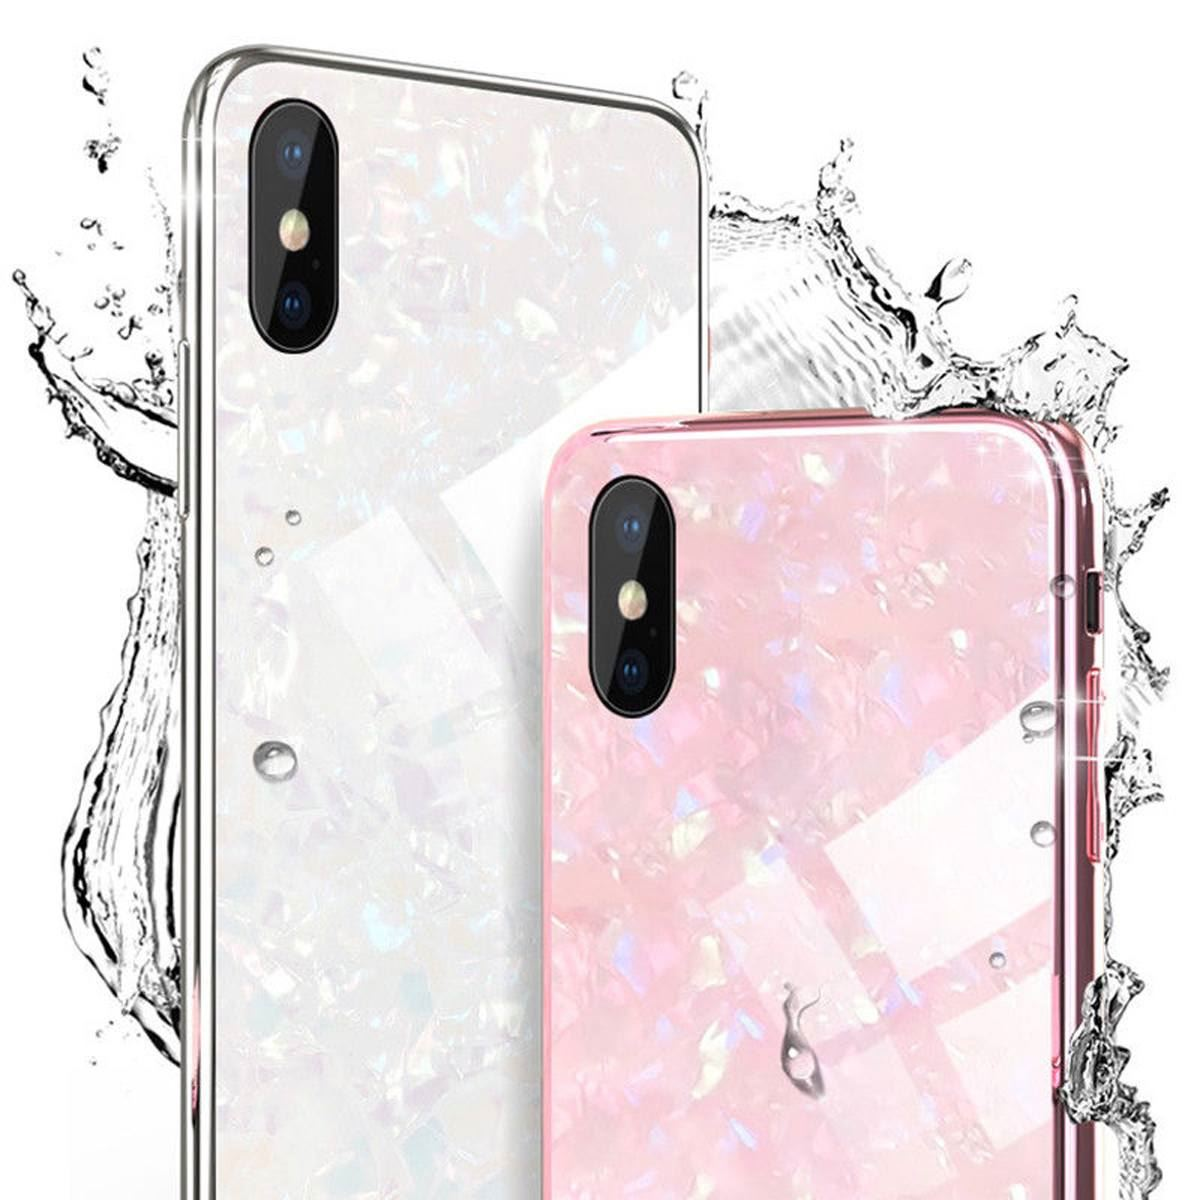 Luxury-Marble-Tempered-Glass-Case-Cover-For-Apple-iPhone-X-XS-XR-Max-10-8-7-6s-6 thumbnail 66